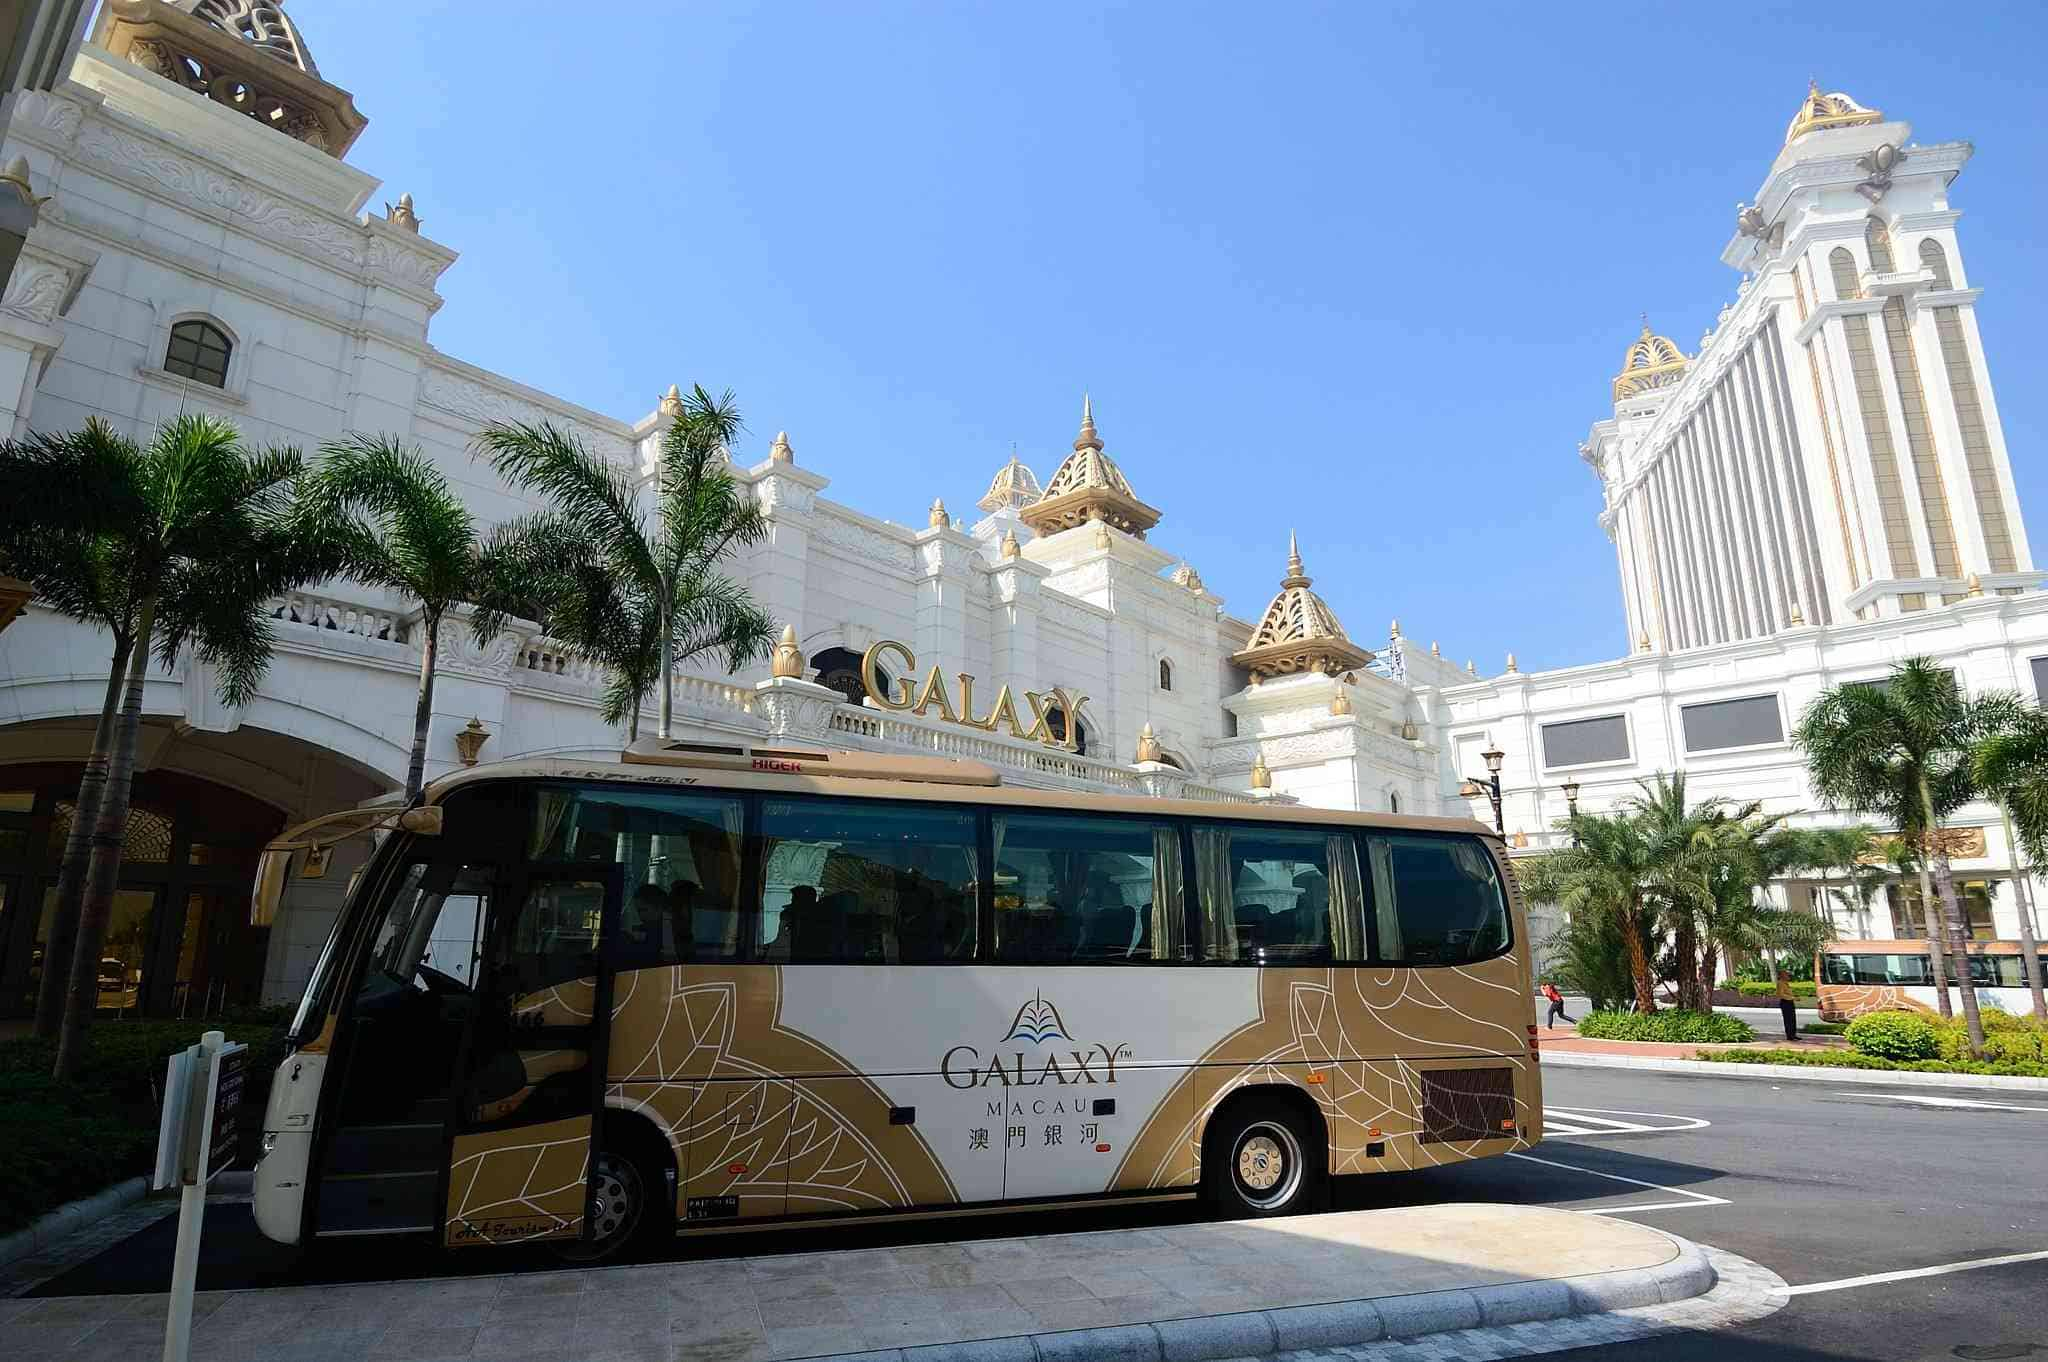 Get around the city for free with the Casino shuttles